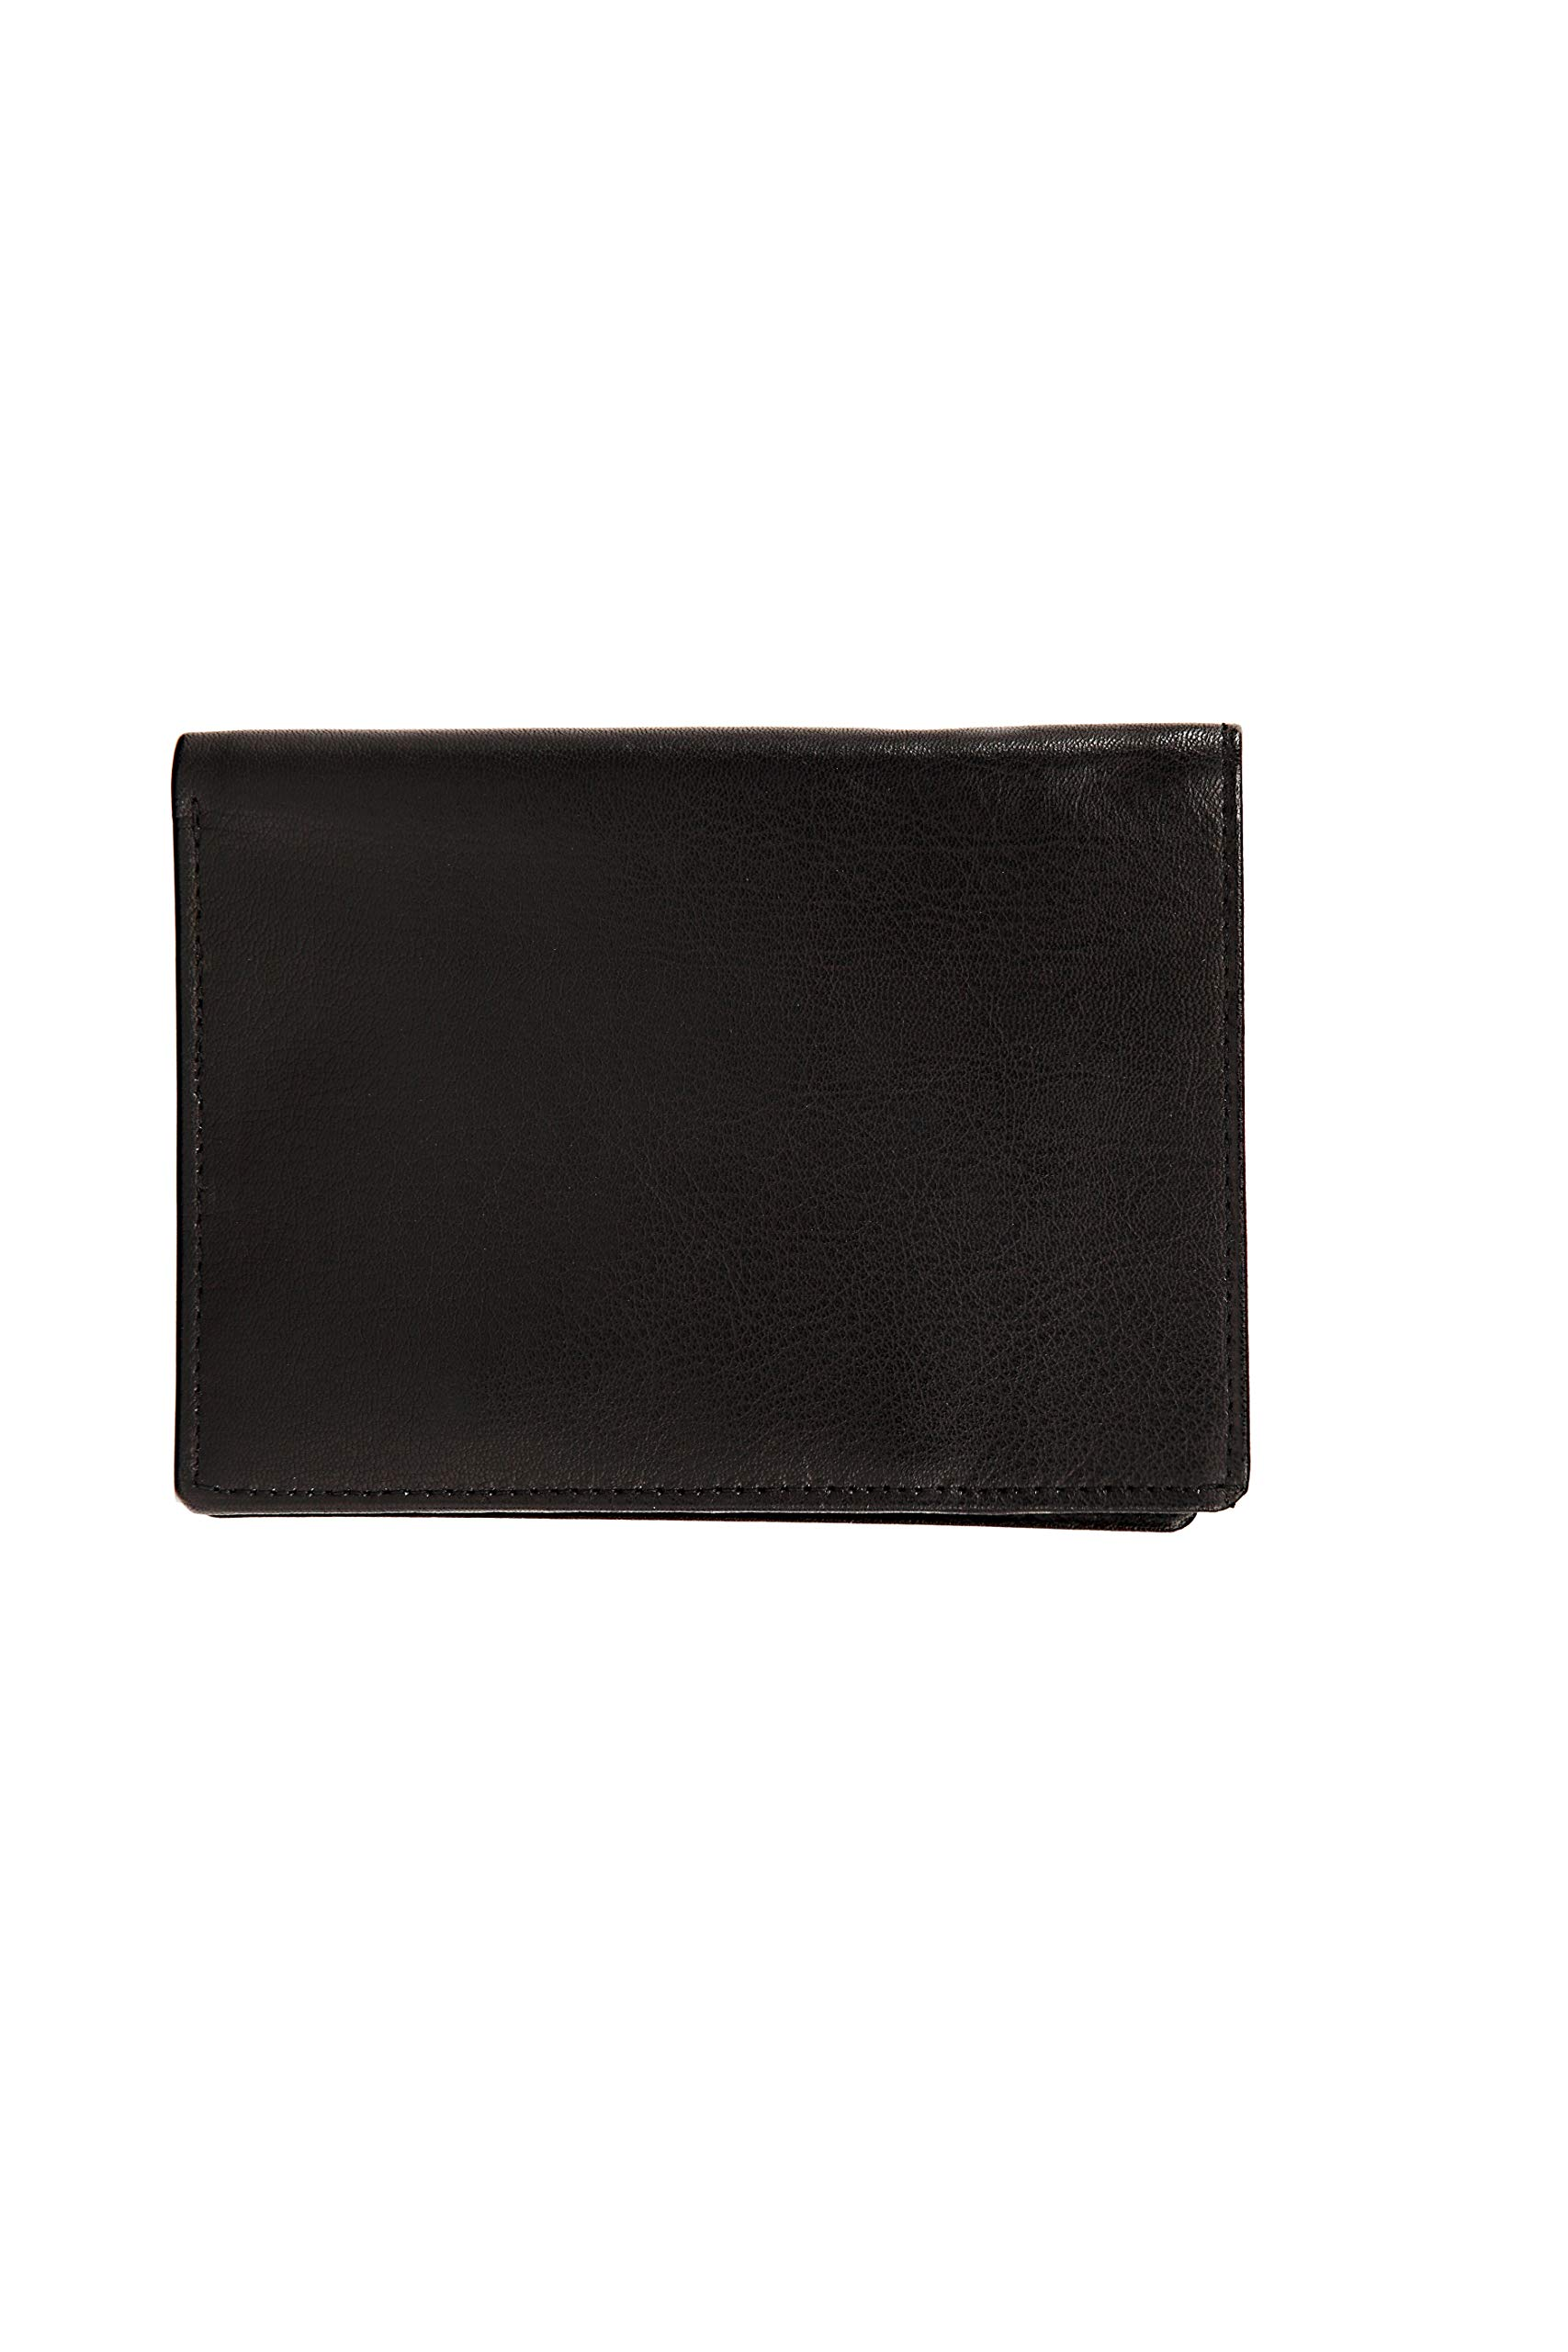 JL Collections 7 Card Slots Unisex Leather Passport Wallet (Black)